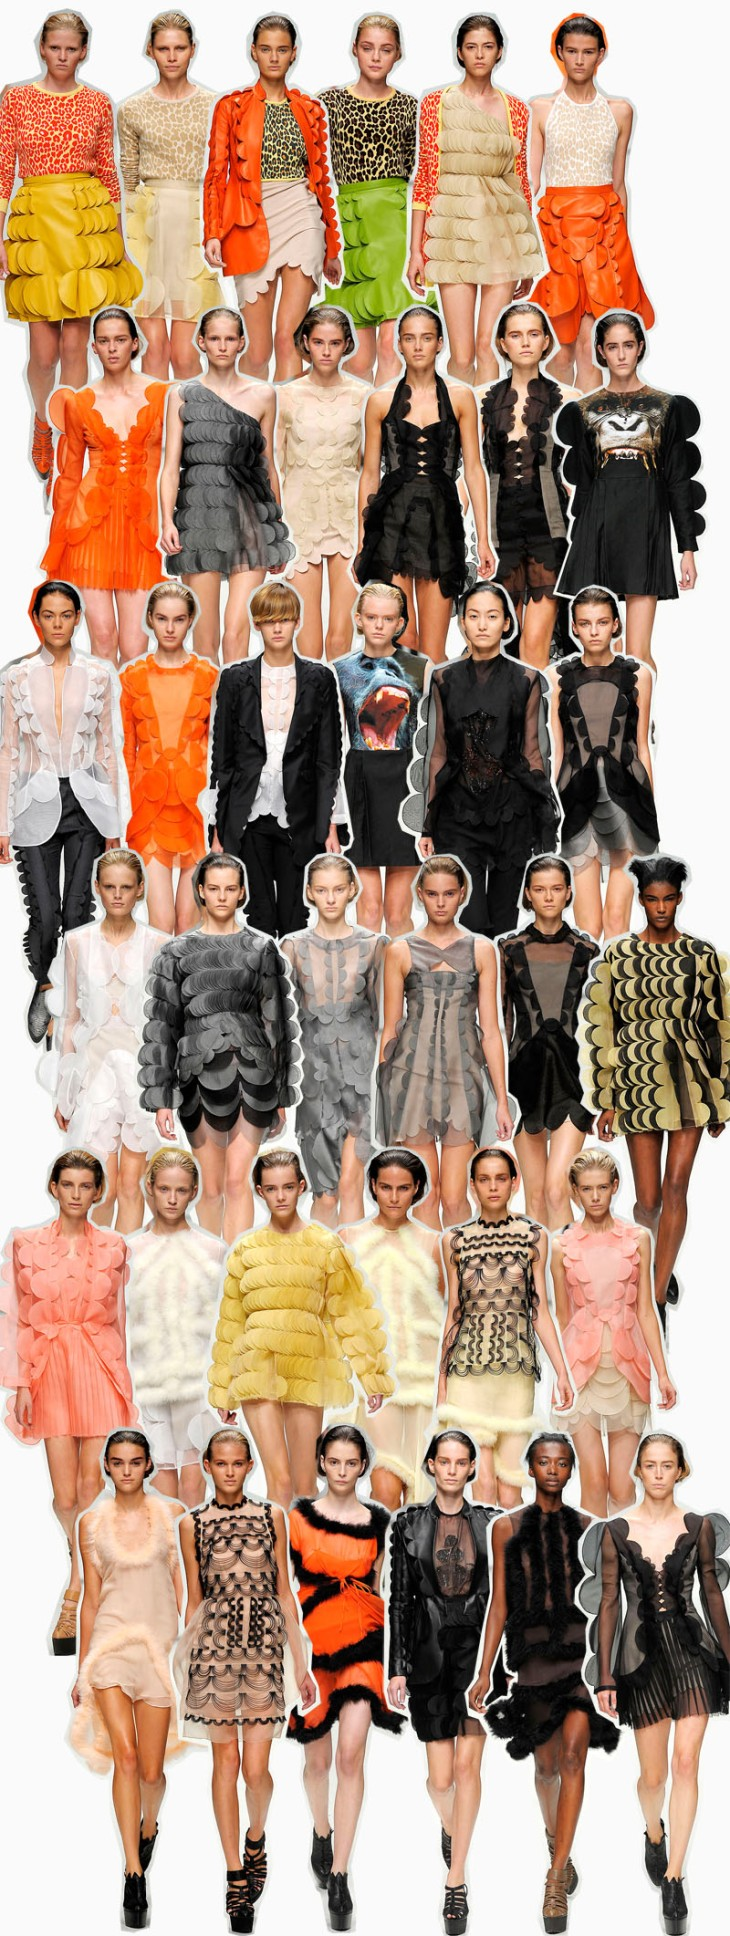 Christopher Kane collage copia